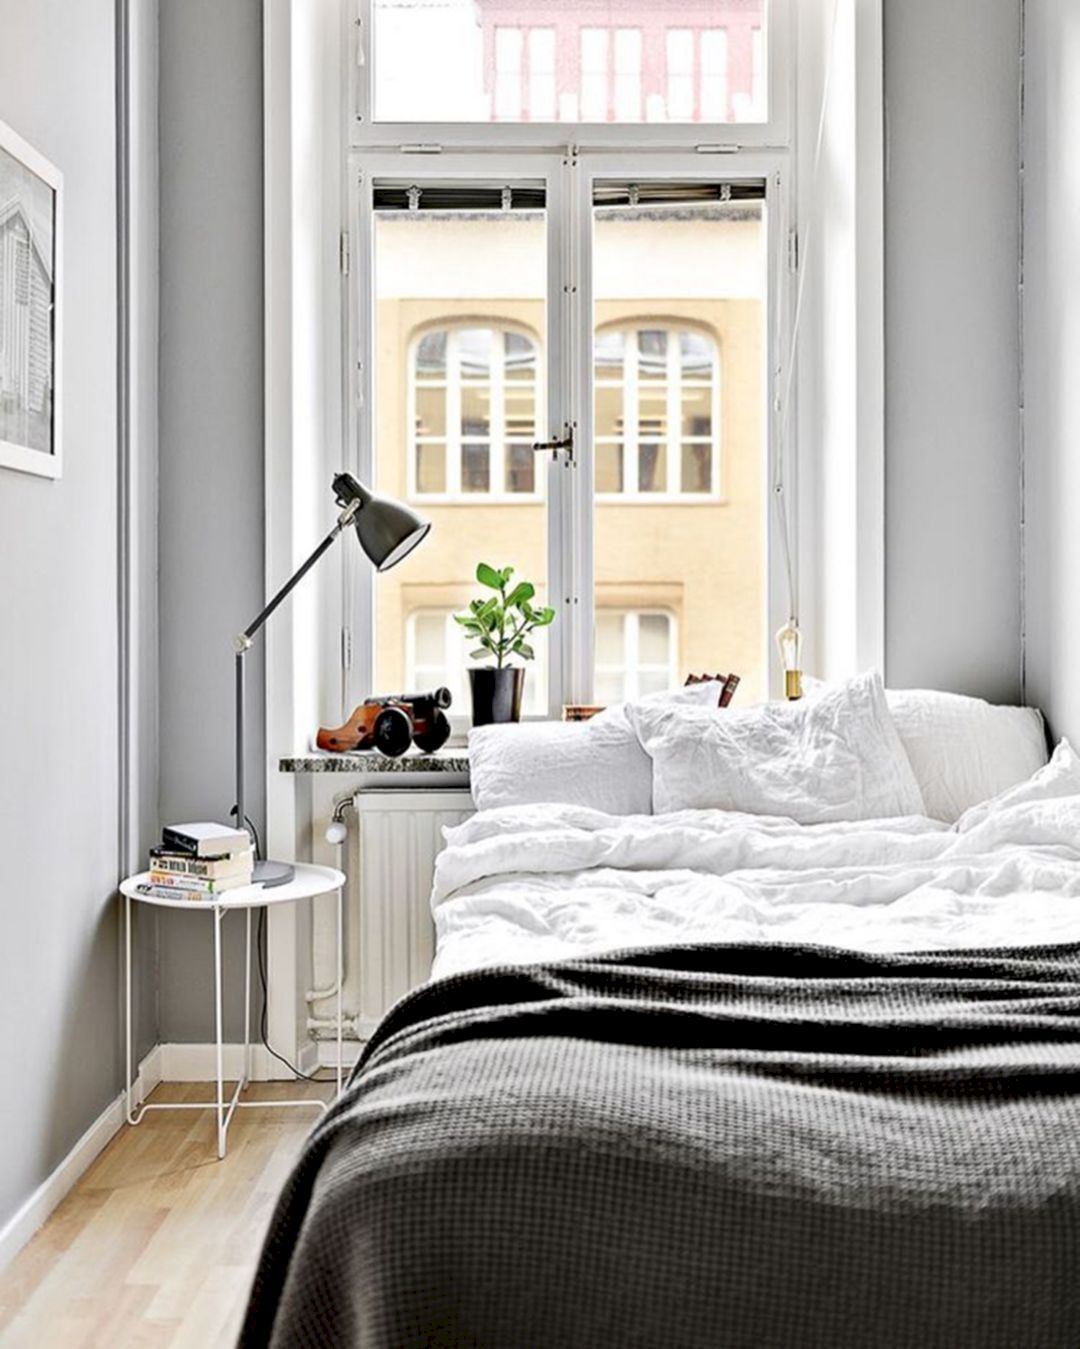 49 Cool Small Bedroom Ideas That Perfect For Small Home ...